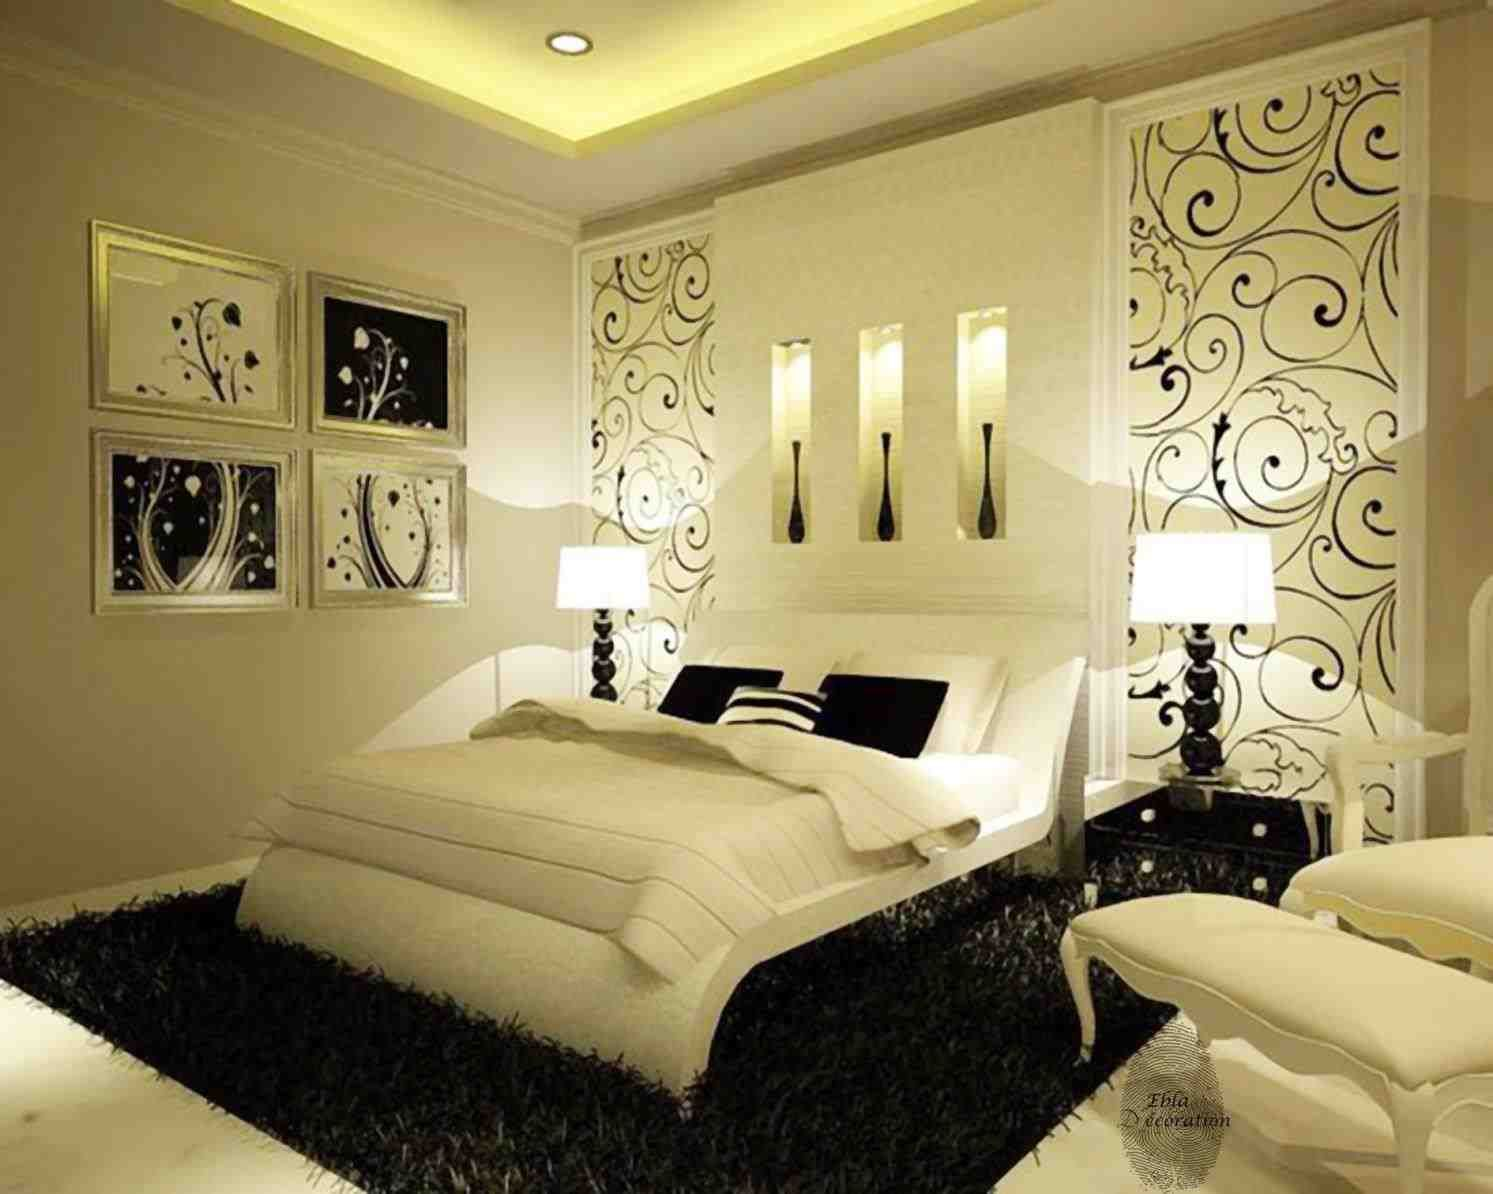 How To Decorate Bedroom For Romantic Night Camere Da Letto Di